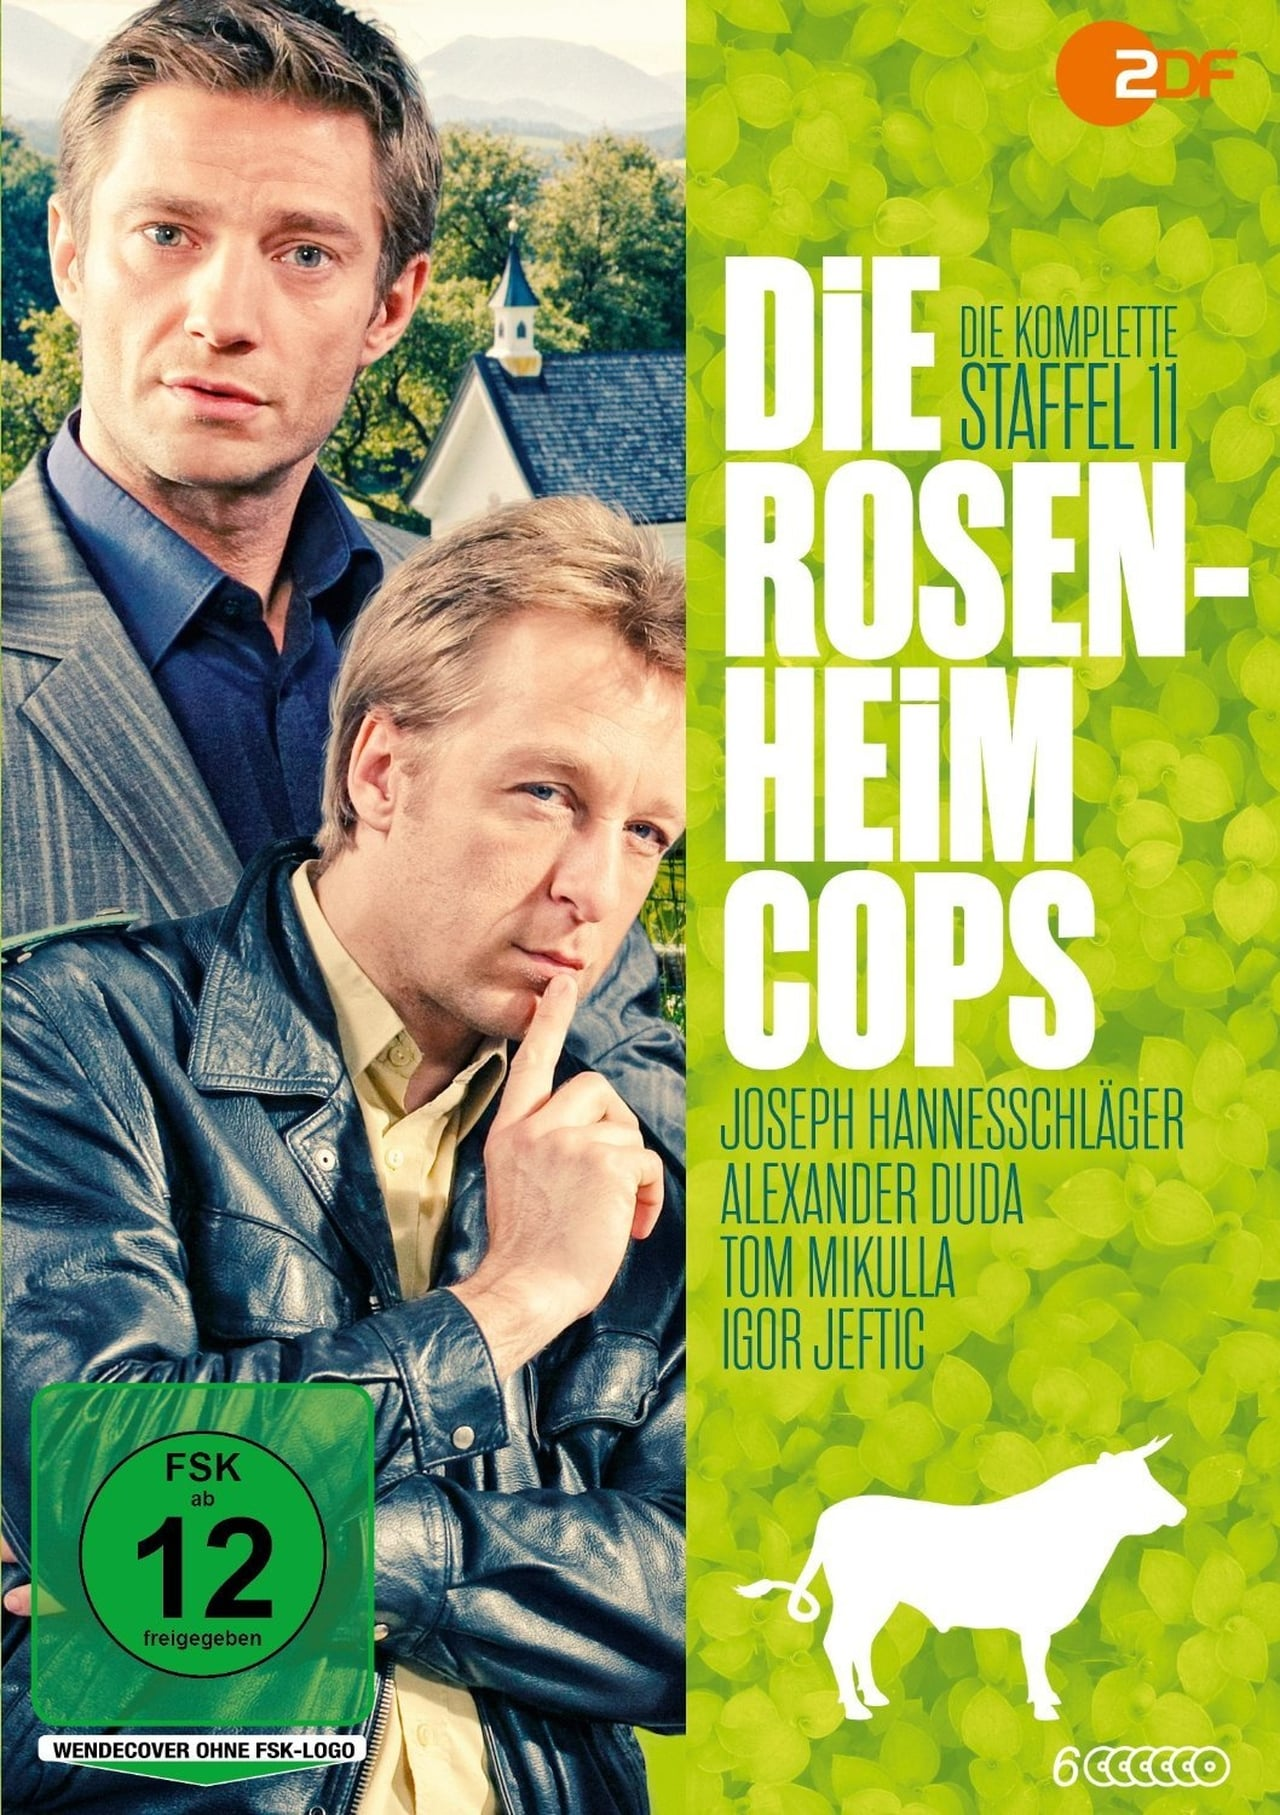 Putlocker The Rosenheim Cops Season 11 (2011)